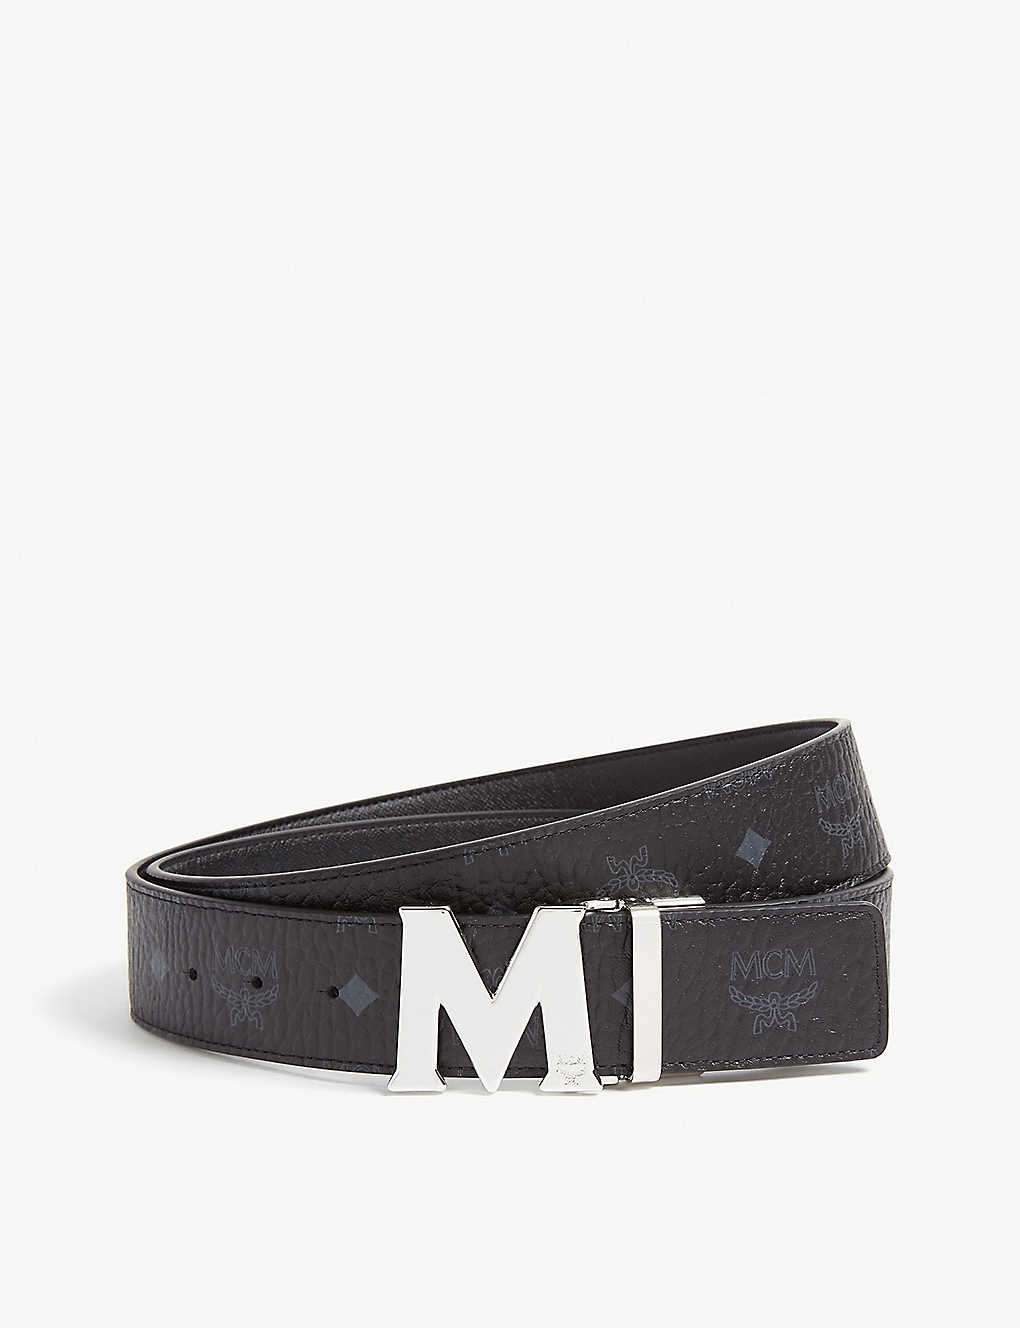 Mcm Claus M Visetos And Leather Reversible Belt Selfridges Com Safe shipping and easy returns. claus m visetos and leather reversible belt